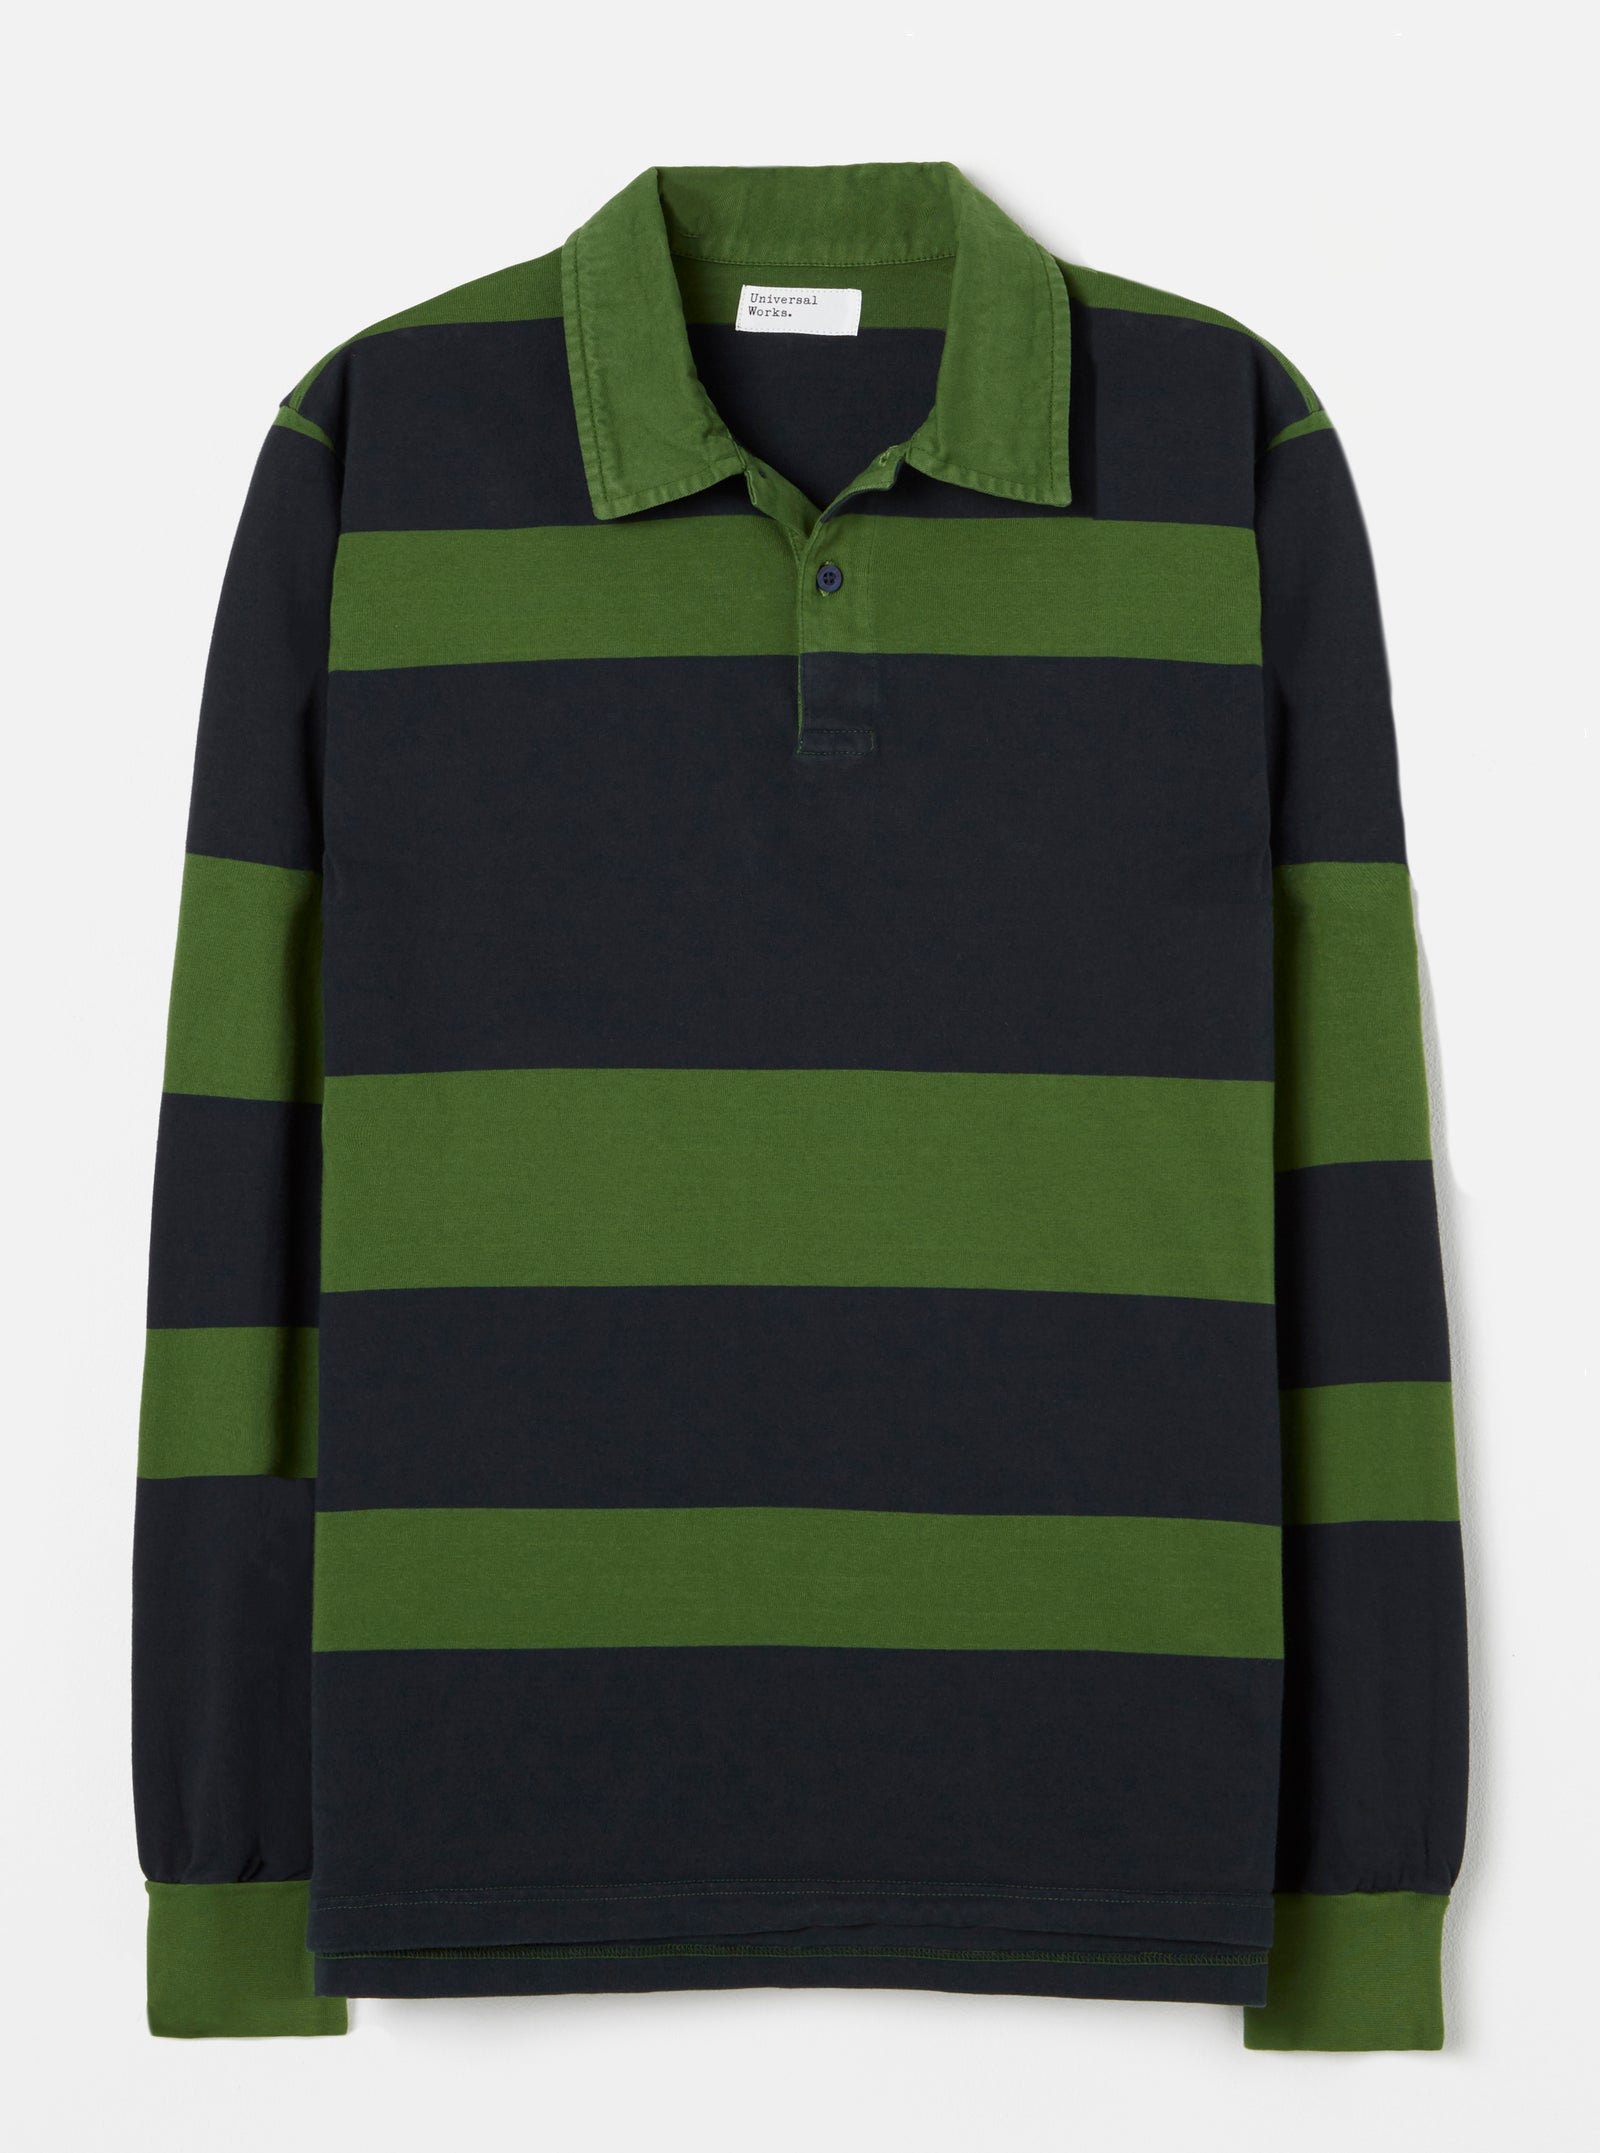 Universal Works Rugby Shirt in Green Stripe